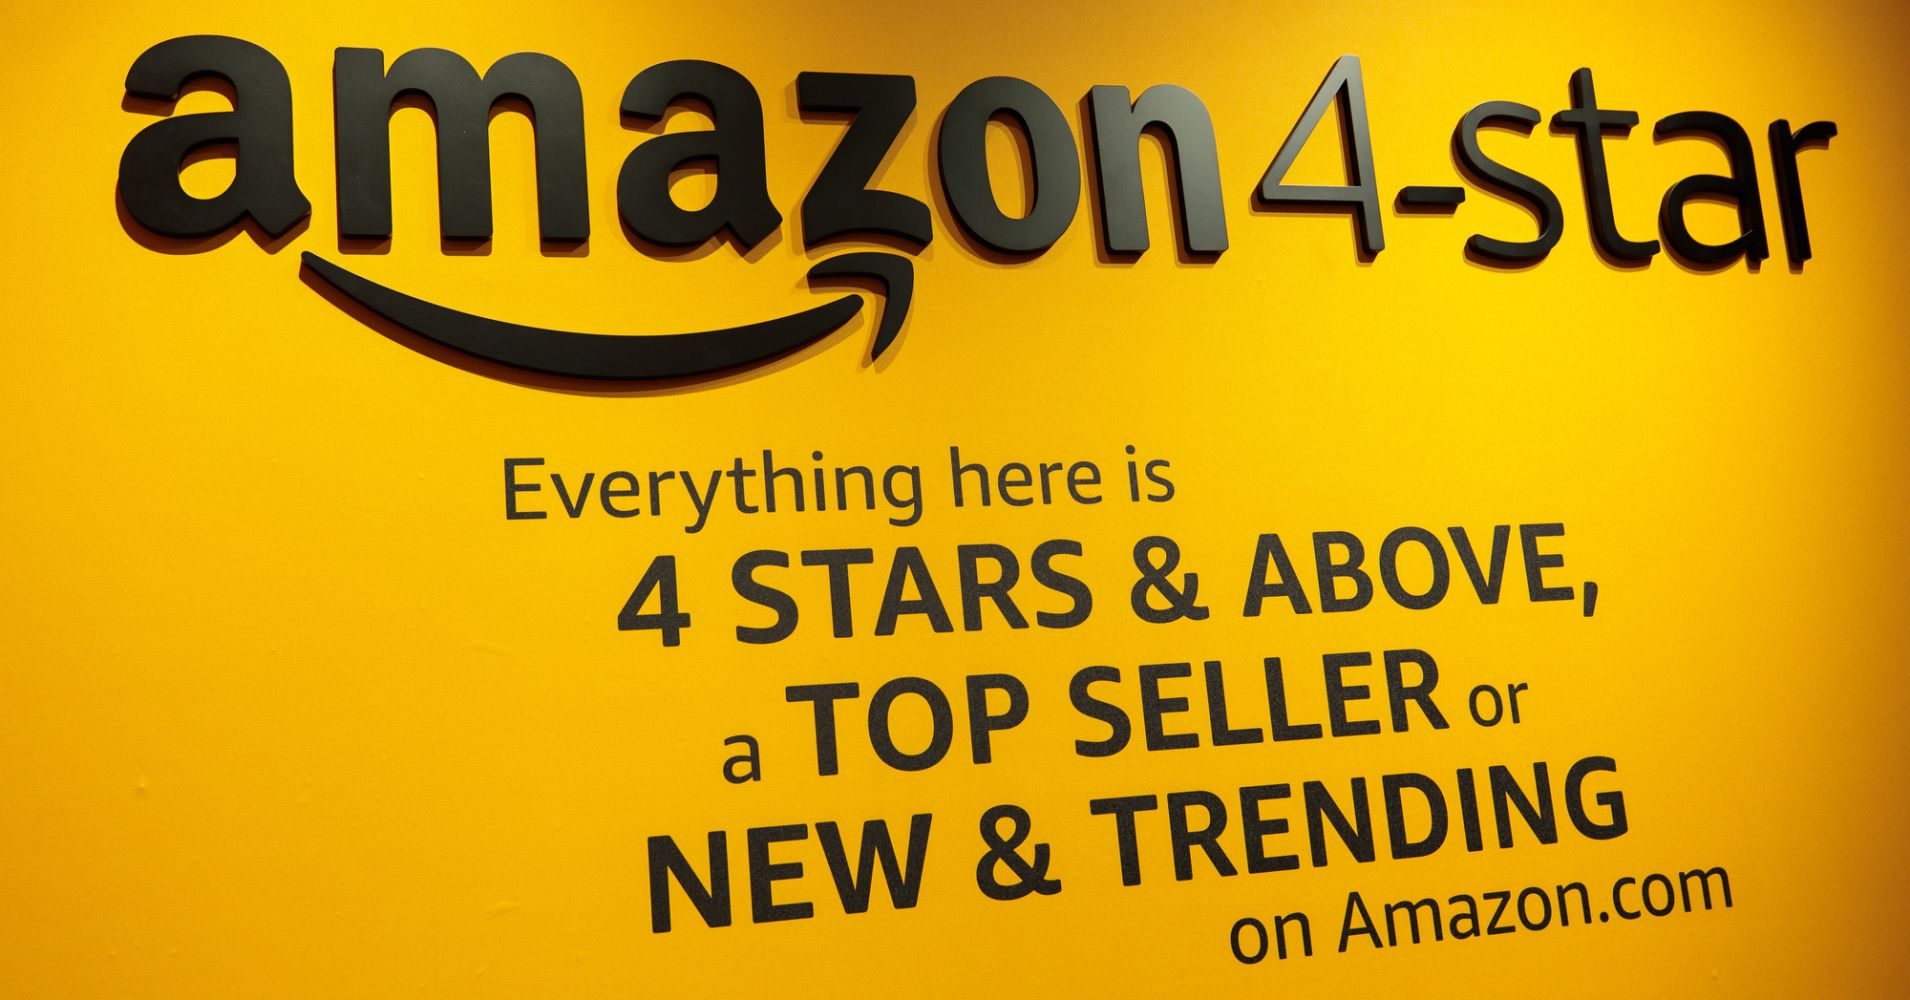 Amazon 4-Star in NYC – Top Selling Products at store